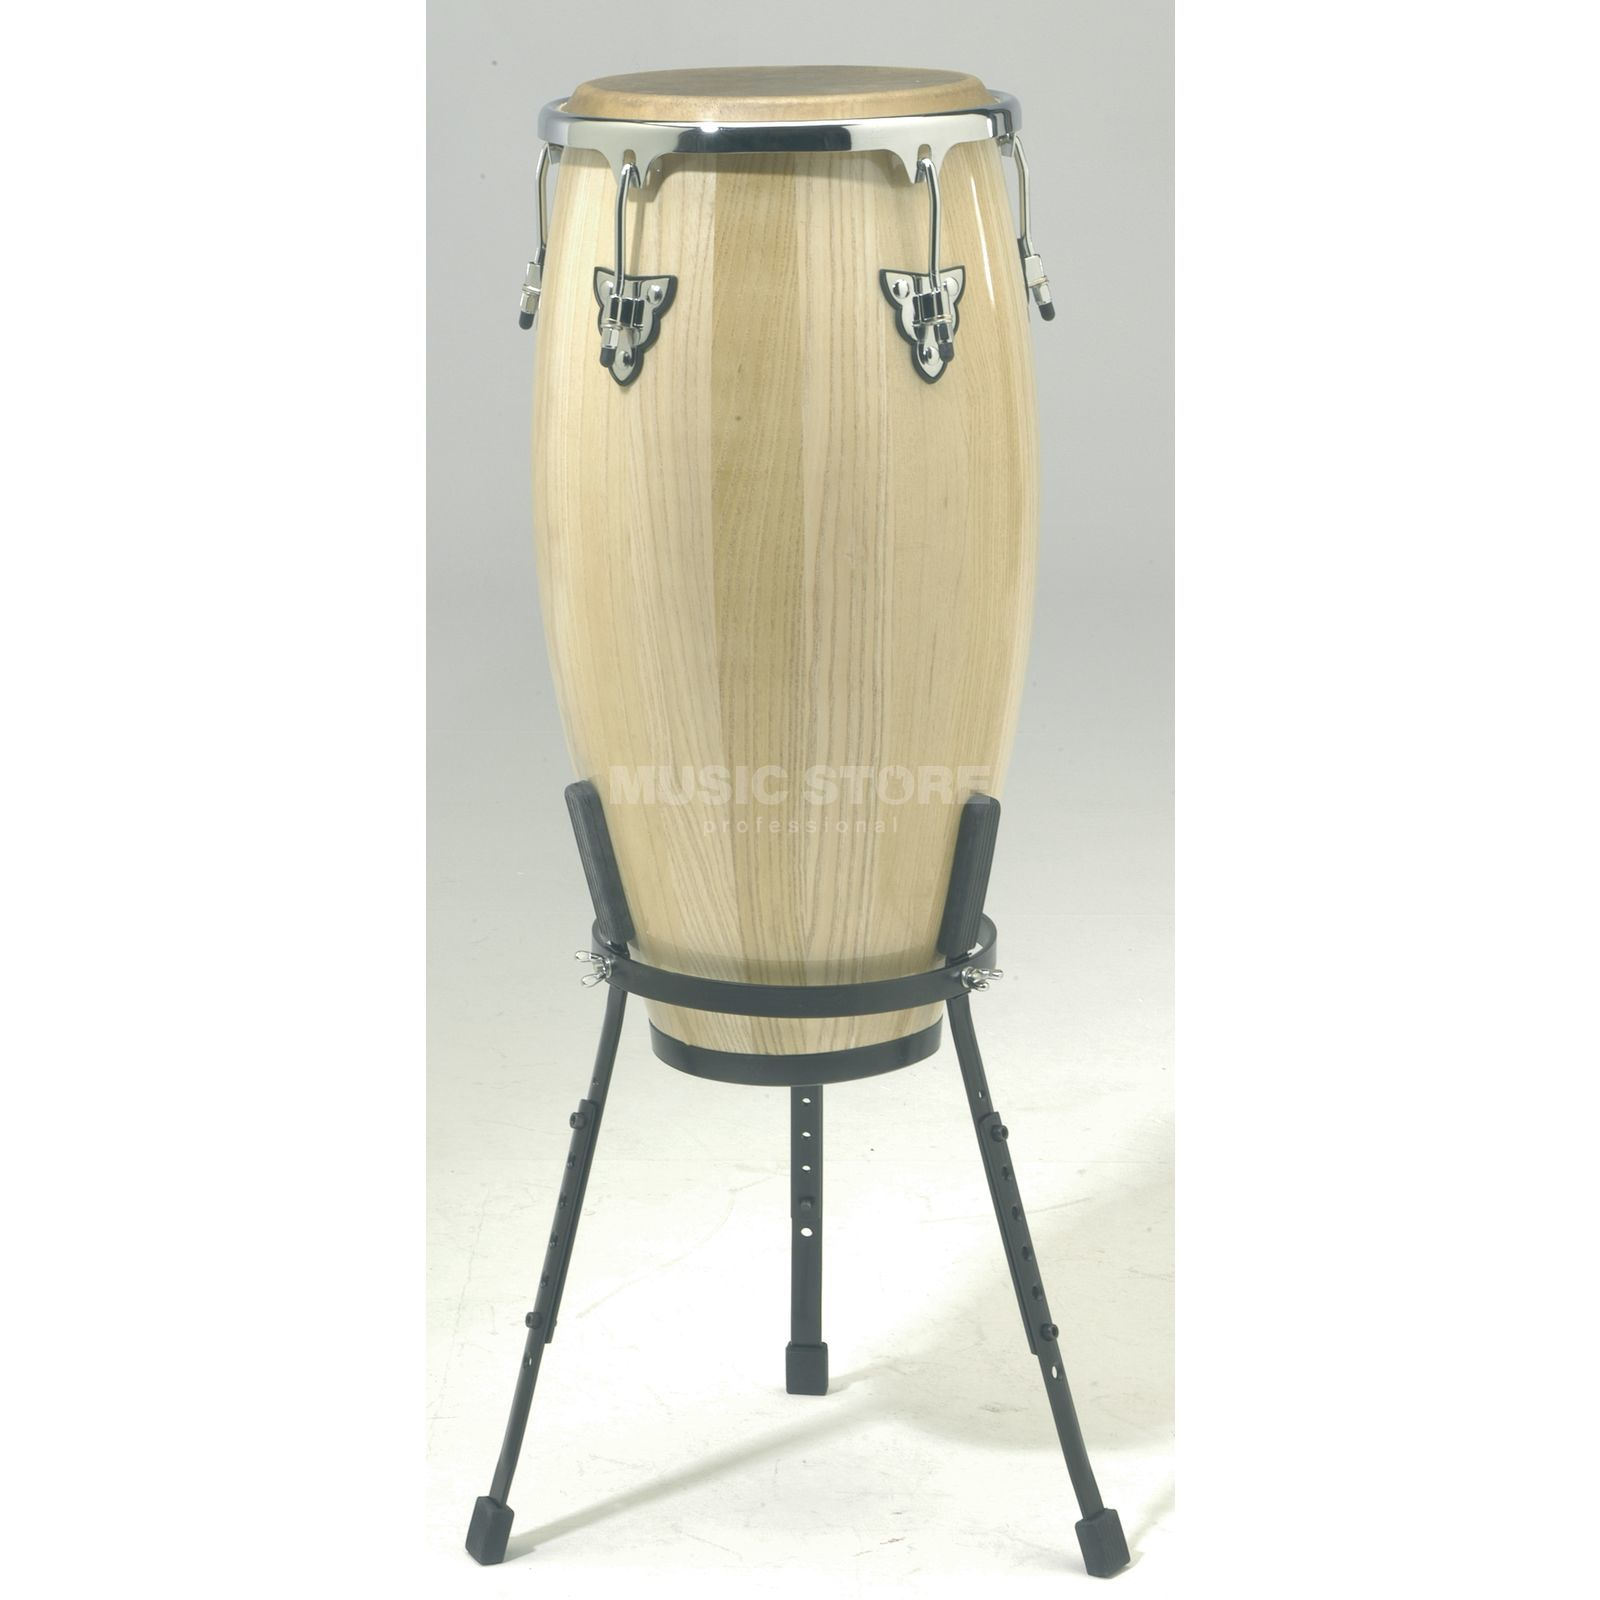 "Sonor Champion Conga CC1175NHG 11 3/4"" Natural Produktbild"